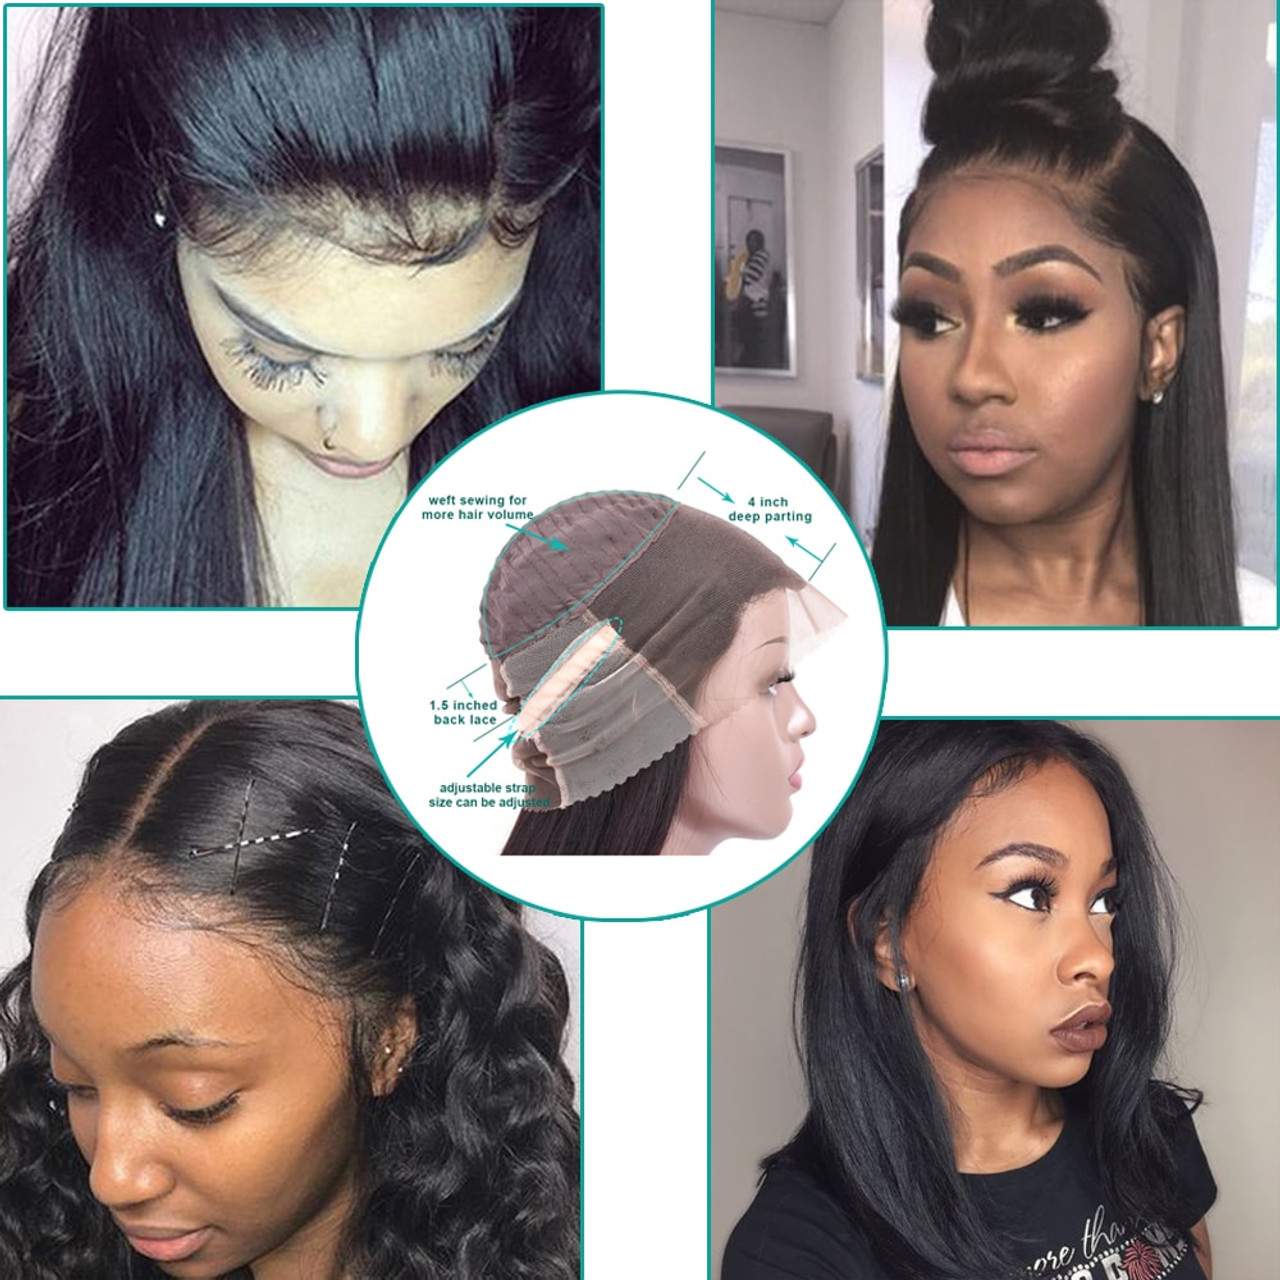 Hair Extensions & Wigs Human Hair Lace Wigs Short Bob Wig 13*4 Lace Front Wigs 150% Brazilian Remy Hair Straight Lace Front Human Hair Wigs For Black Women Cap Adjusted High Resilience